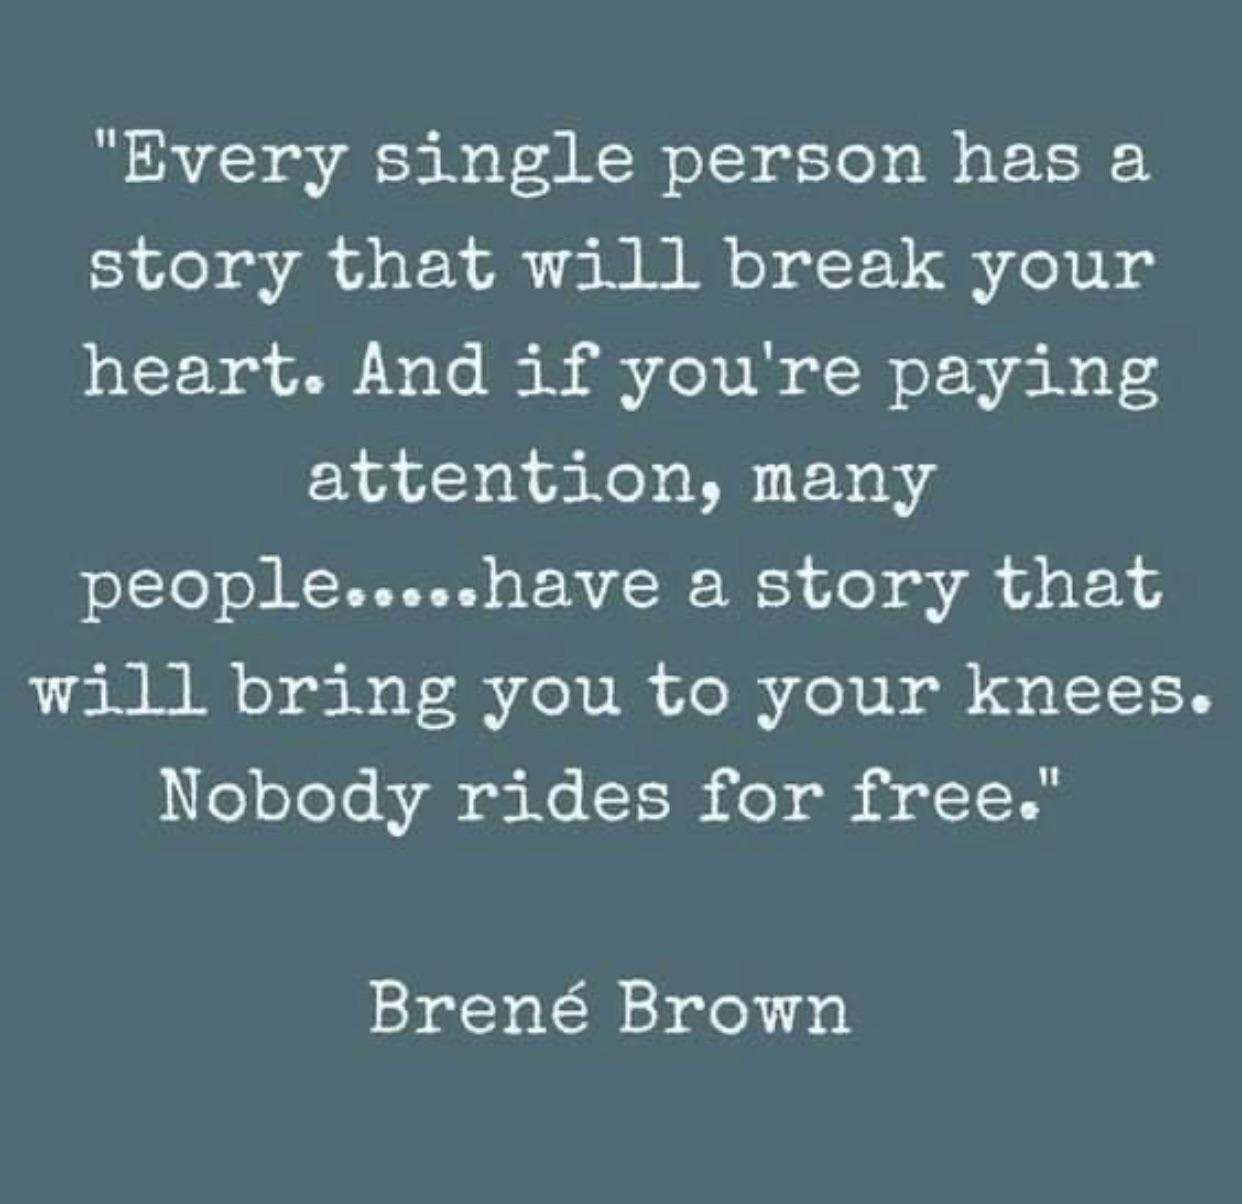 """""""Every single person has a story that will break your heart. And if you're paying attention, many people.....have a story that will bring you to your knees. Nobody rides for free."""" Brené Brown https://inspirational.ly"""